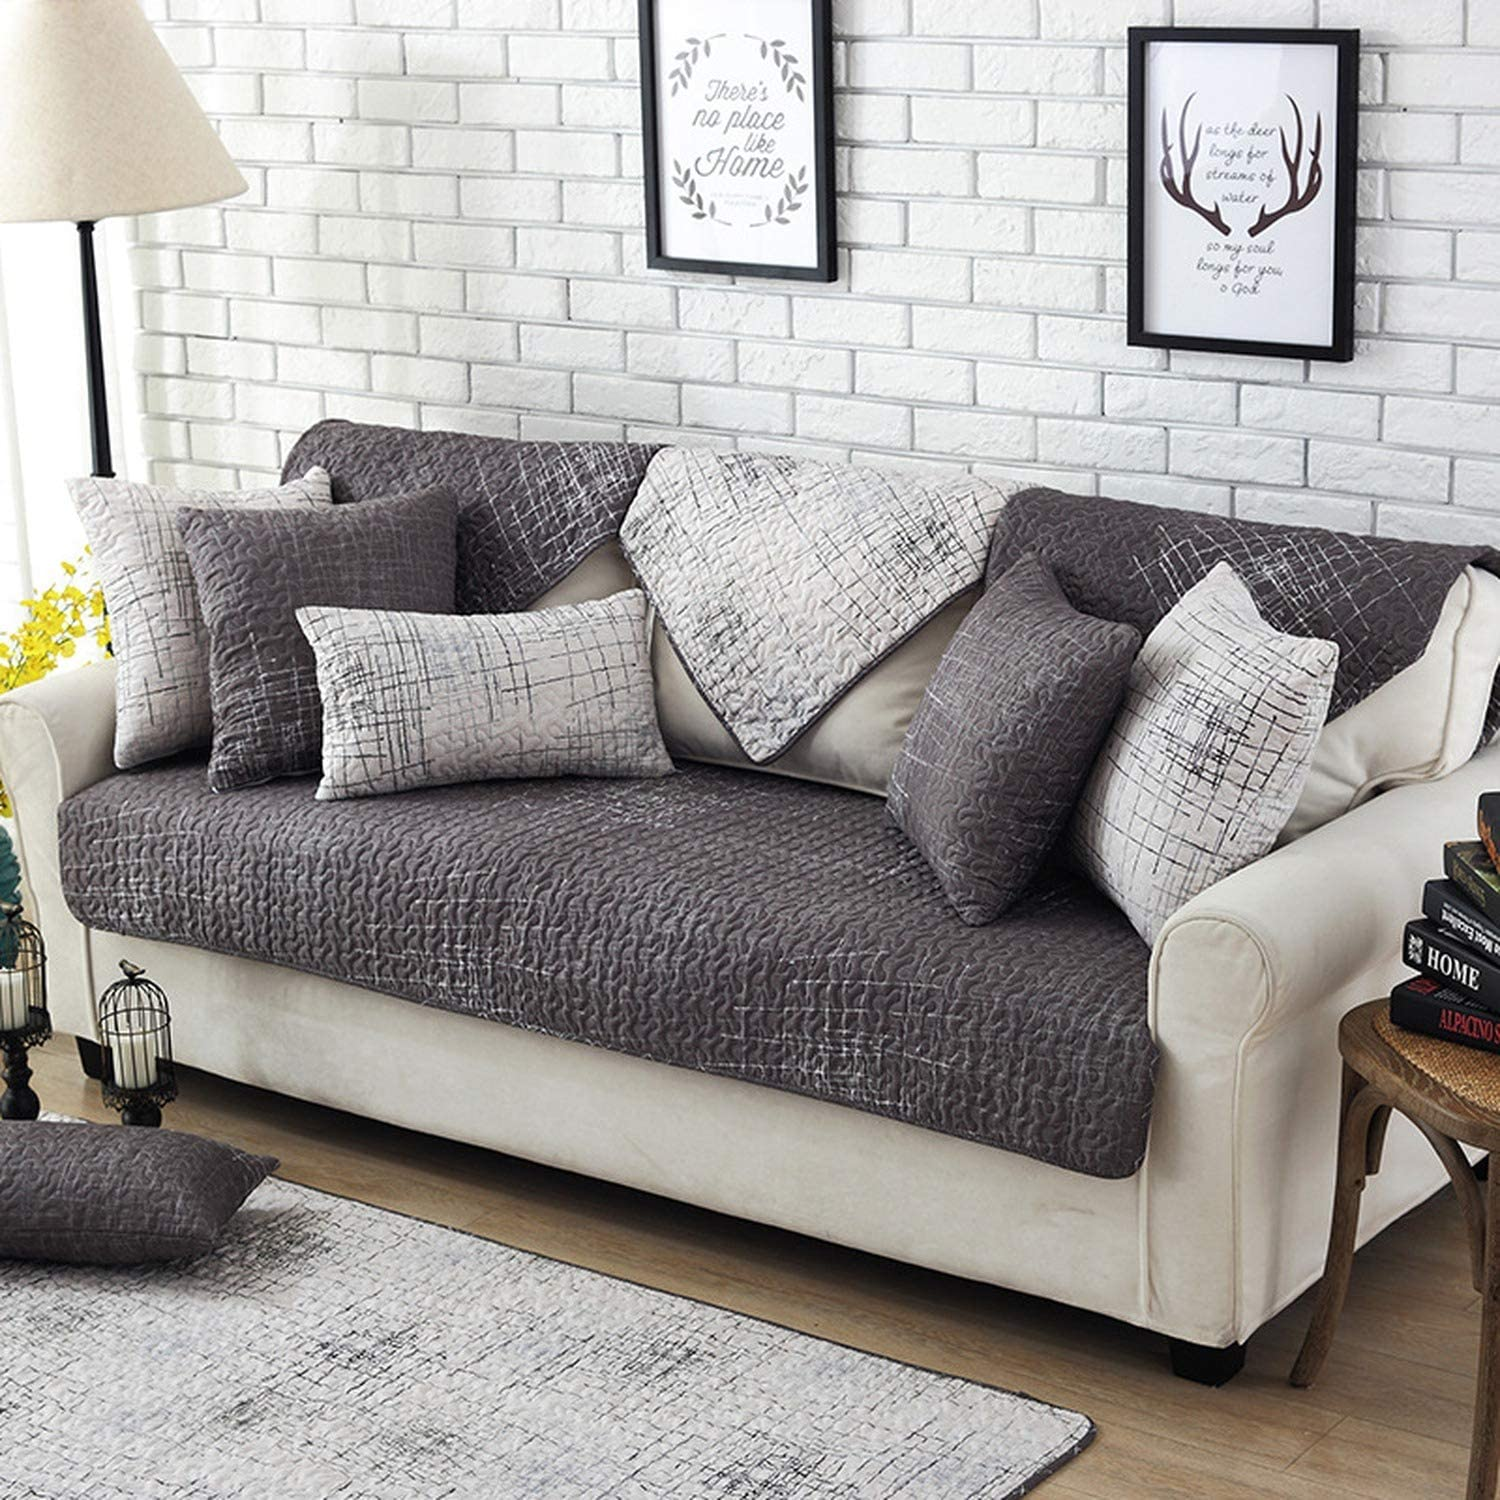 tt lemon artistic grey style sofa cover